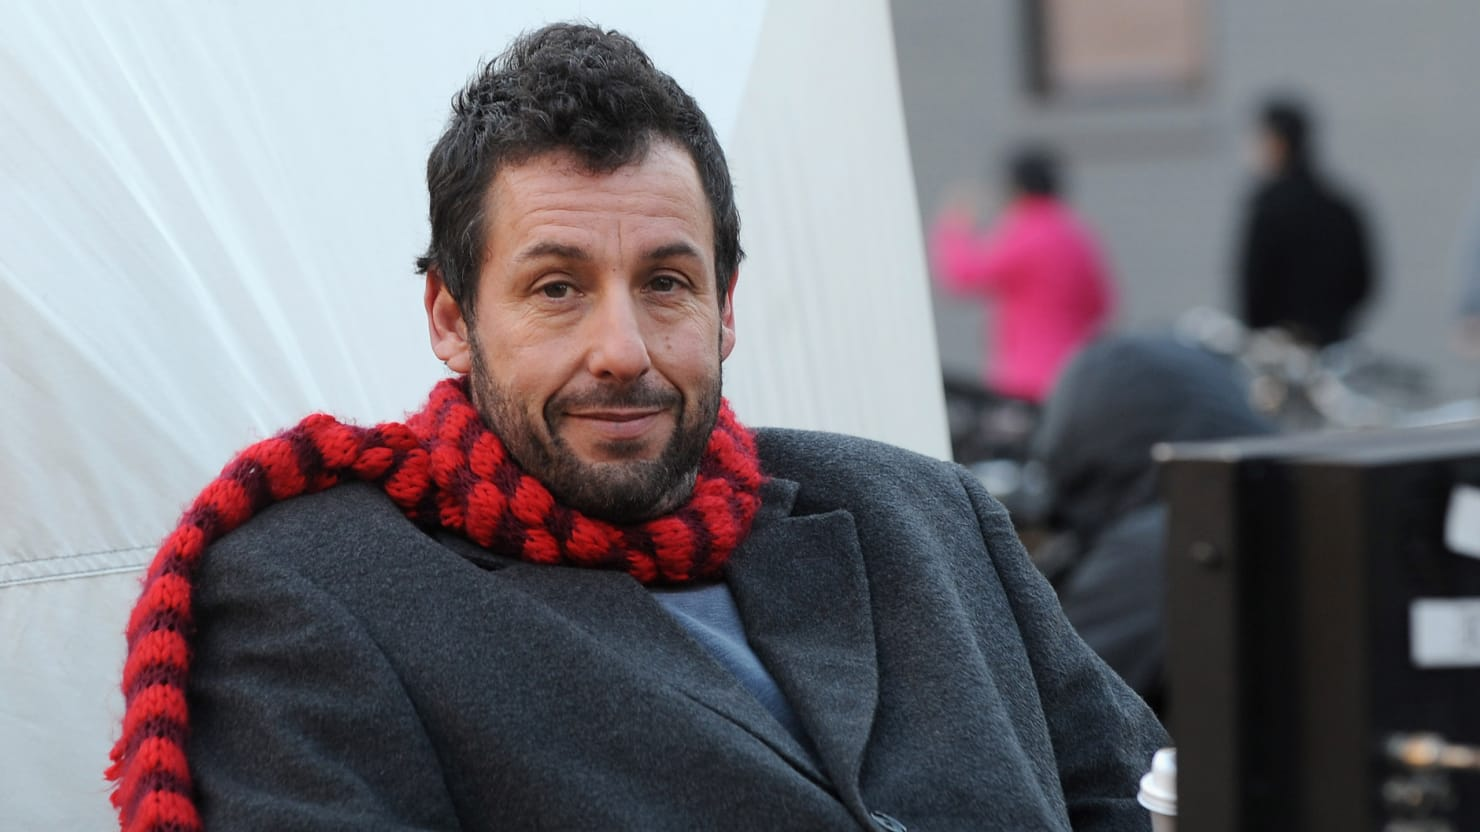 Exclusive: Sony Emails Reveal How Studio Dumped 'Asshole' Adam Sandler